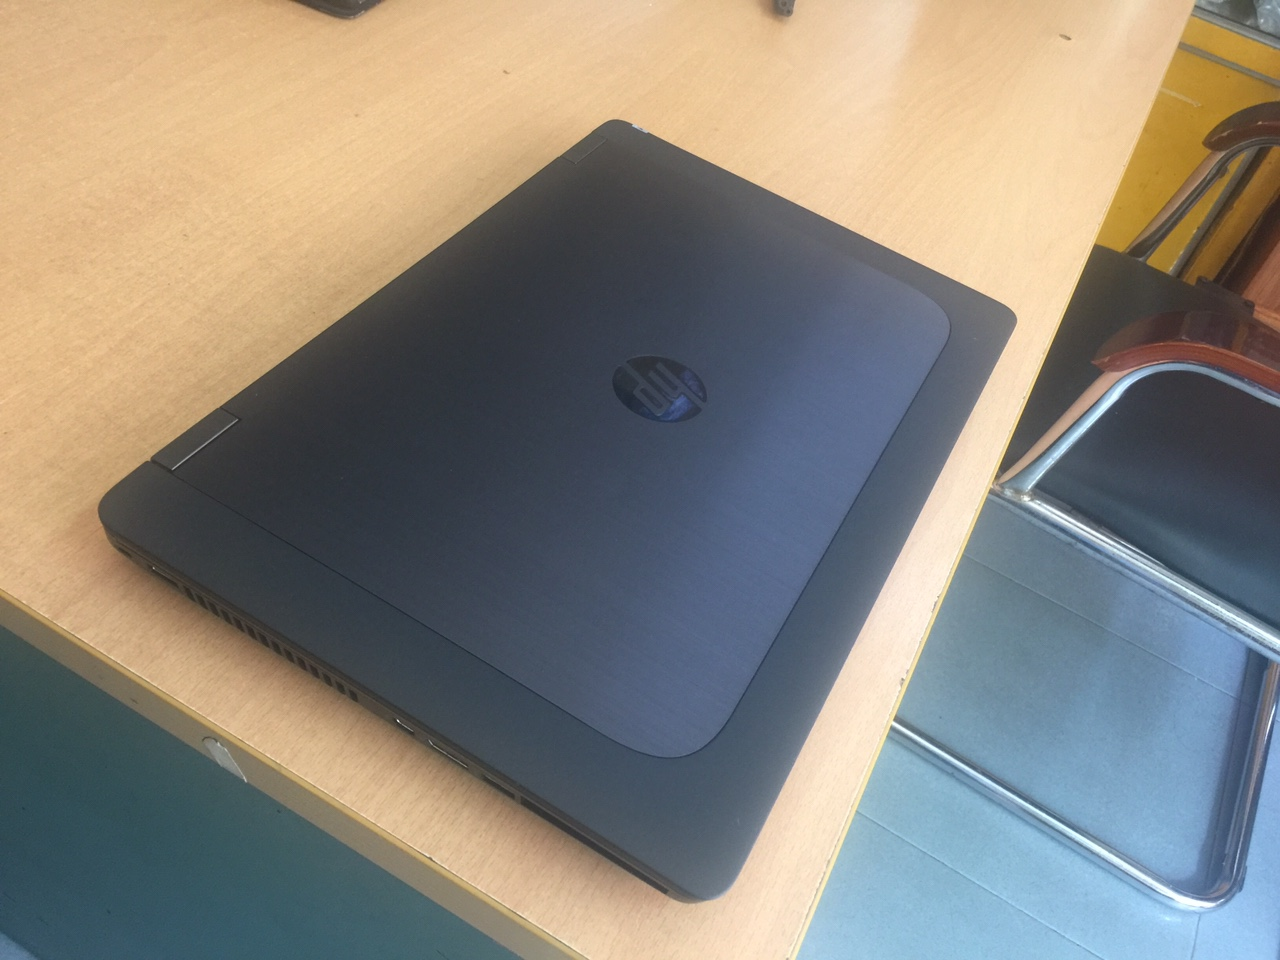 HP ZBOOK 15 G2 I7 4810HQ 8GB 256GB SSD 15.6FHD VGA K1100